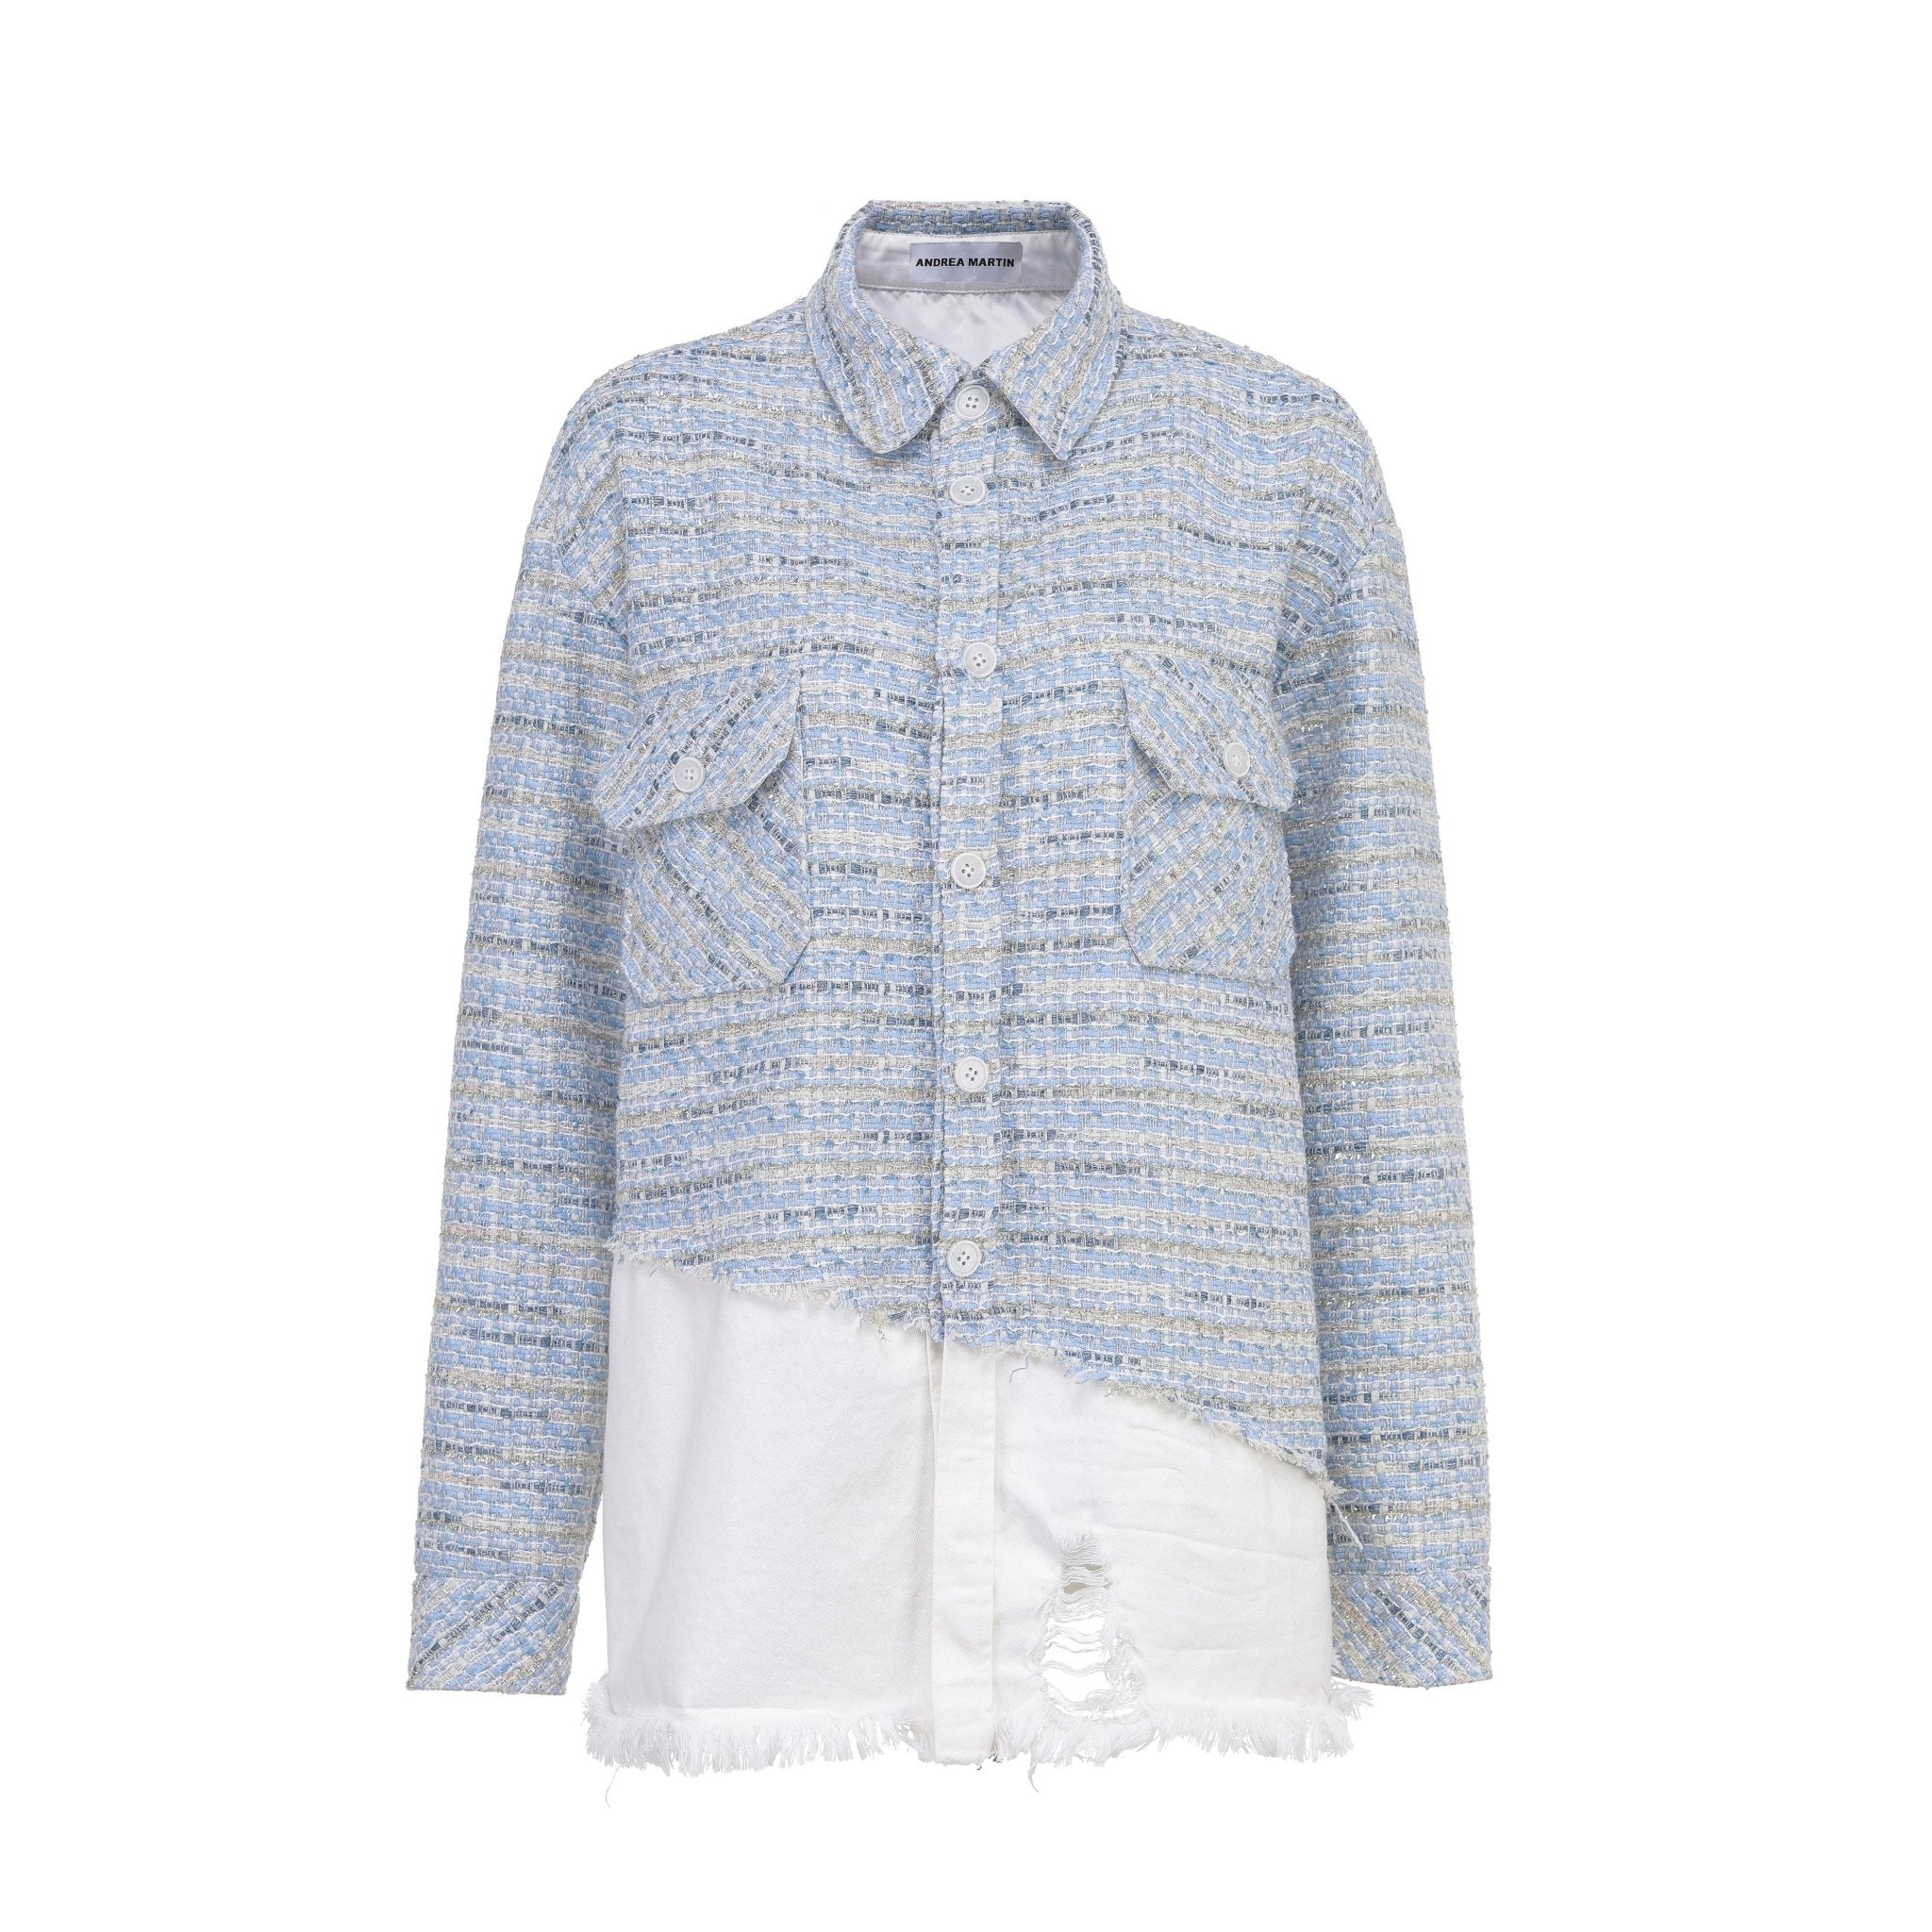 ANDREA MARTIN Joint Denim Shirt | MADA IN CHINA